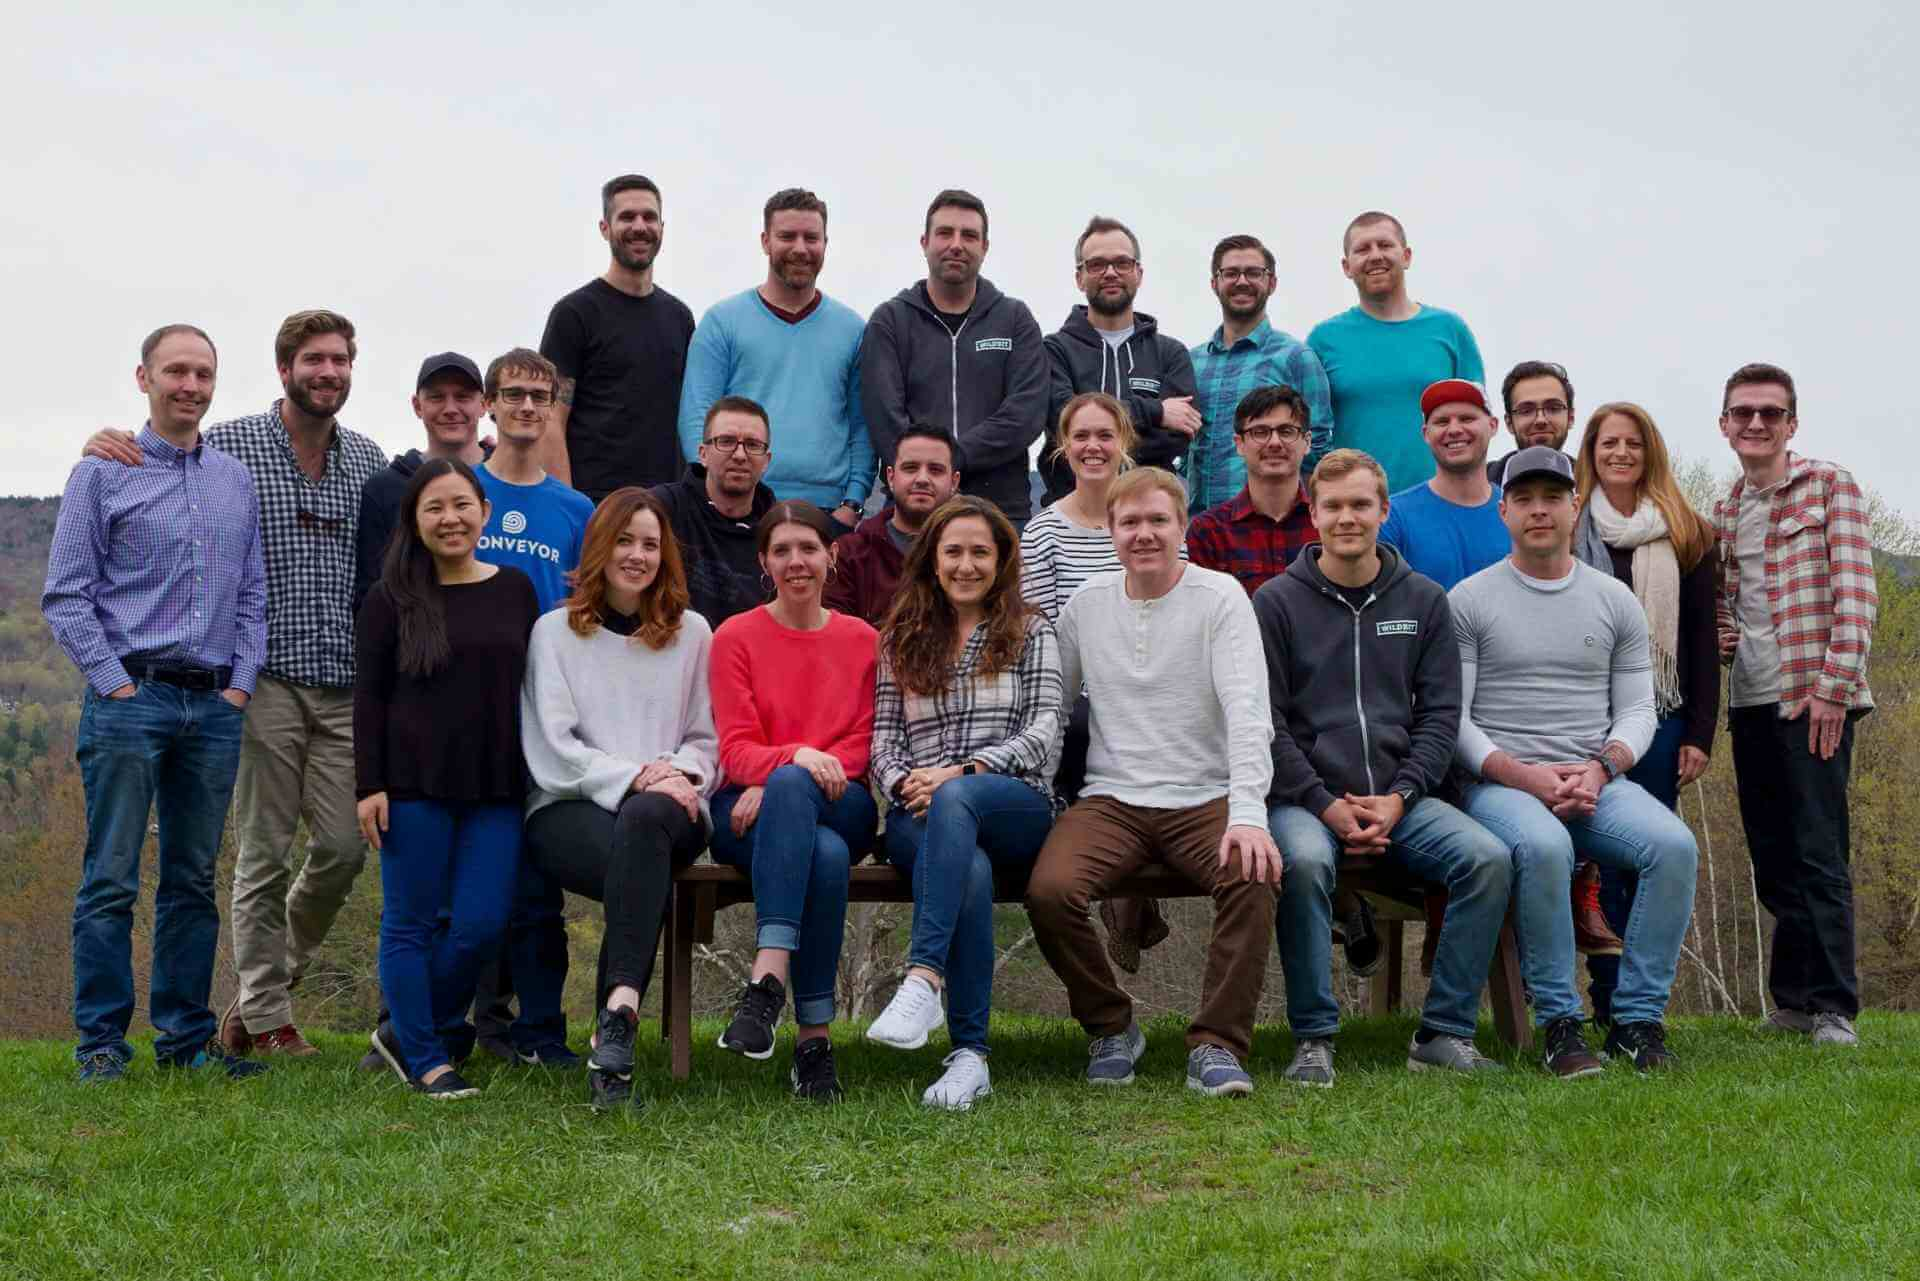 Postmark product management team